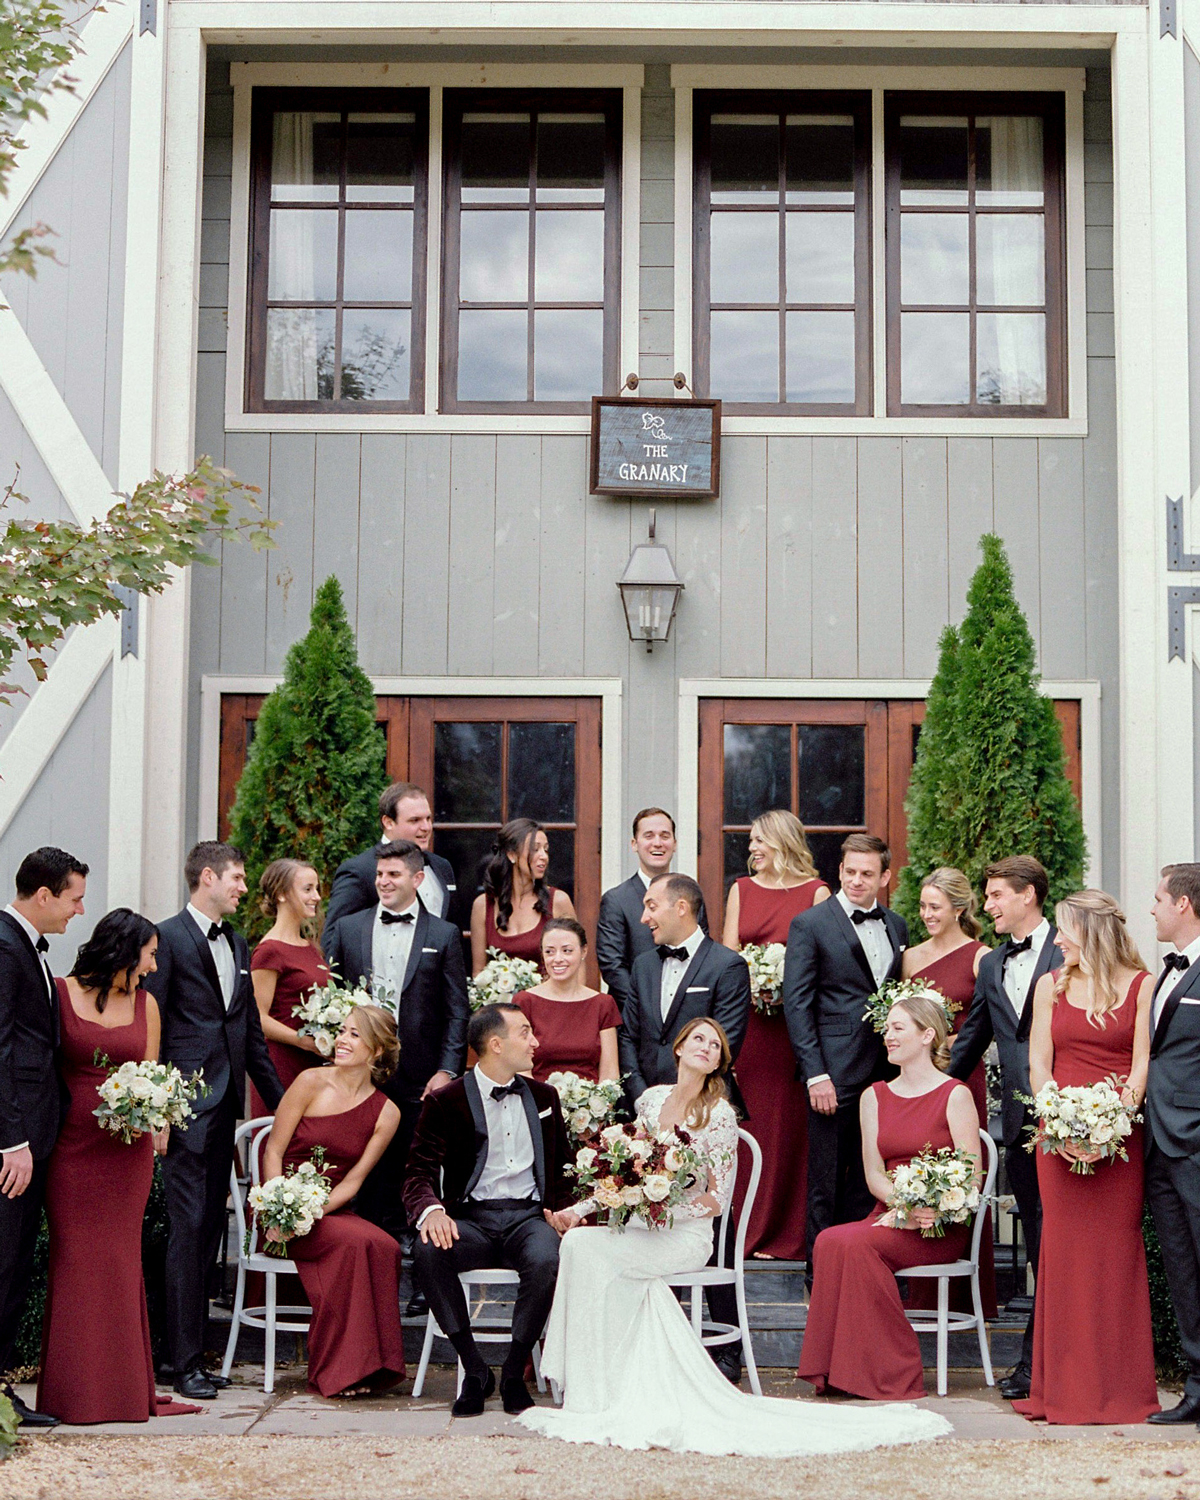 wedding party wearing red dresses and black suits